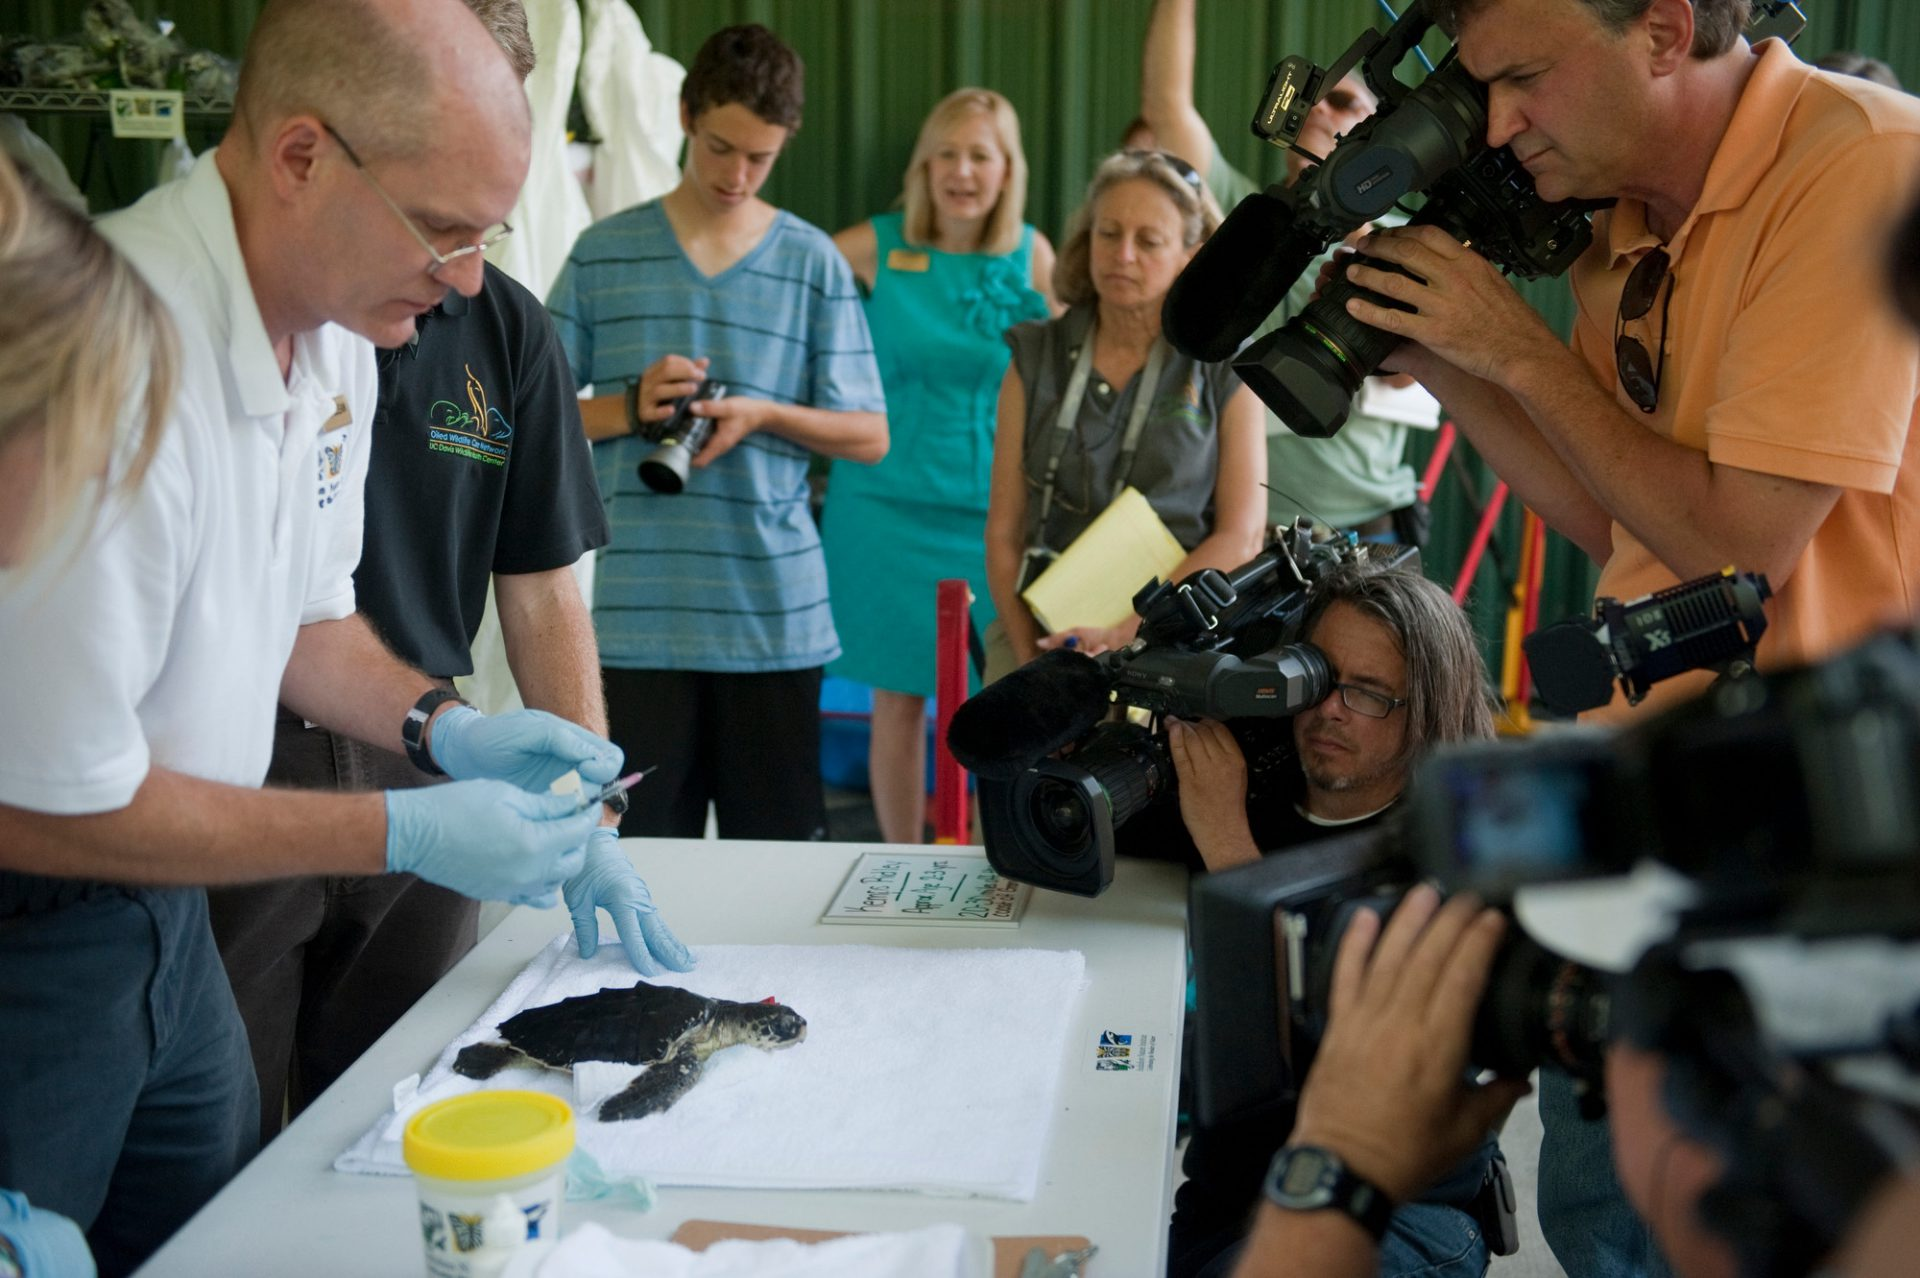 A media event which allowed the press to film three critically endangered (IUCN) and federally endangered Kemp's ridley sea turtles (Lepidochelys kempii) which have been brought into the Audubon Nature Institute near New Orleans, Louisiana, after exposure to oil from the Deepwater Horizon spill.